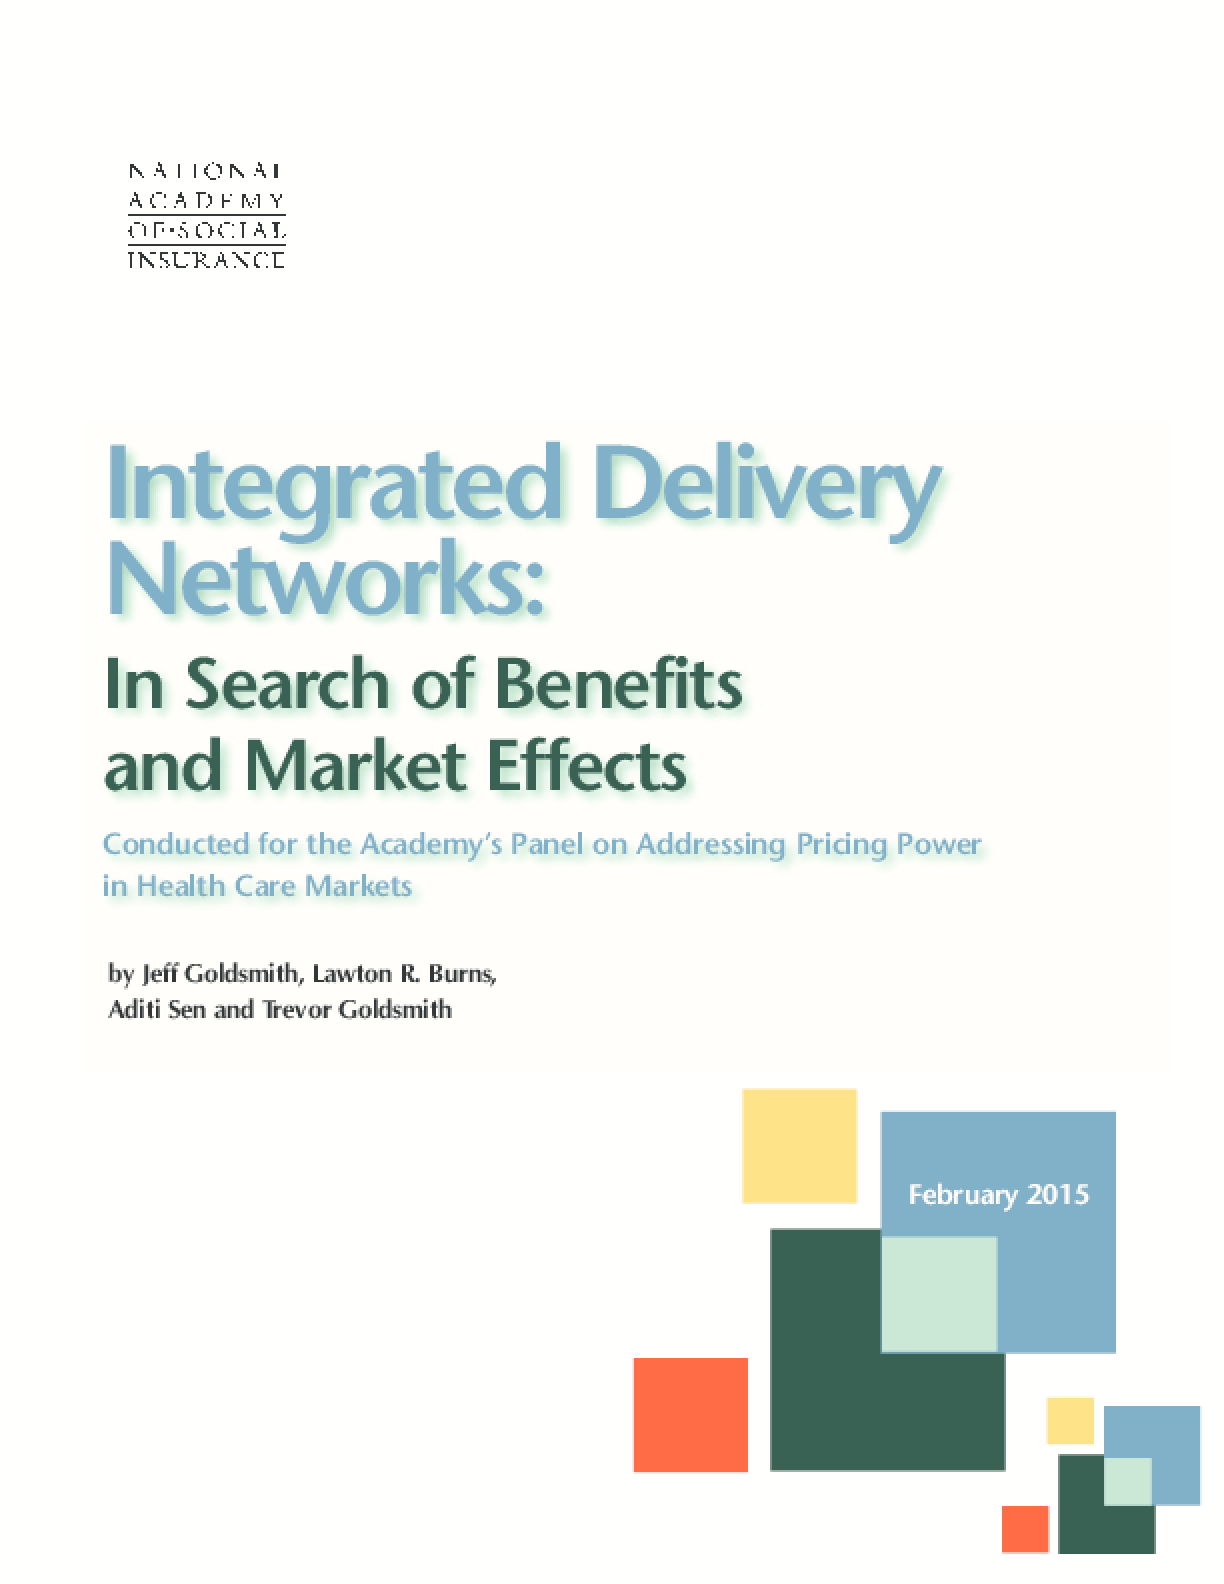 Integrated Delivery Networks: In Search of Benefits and Market Effects